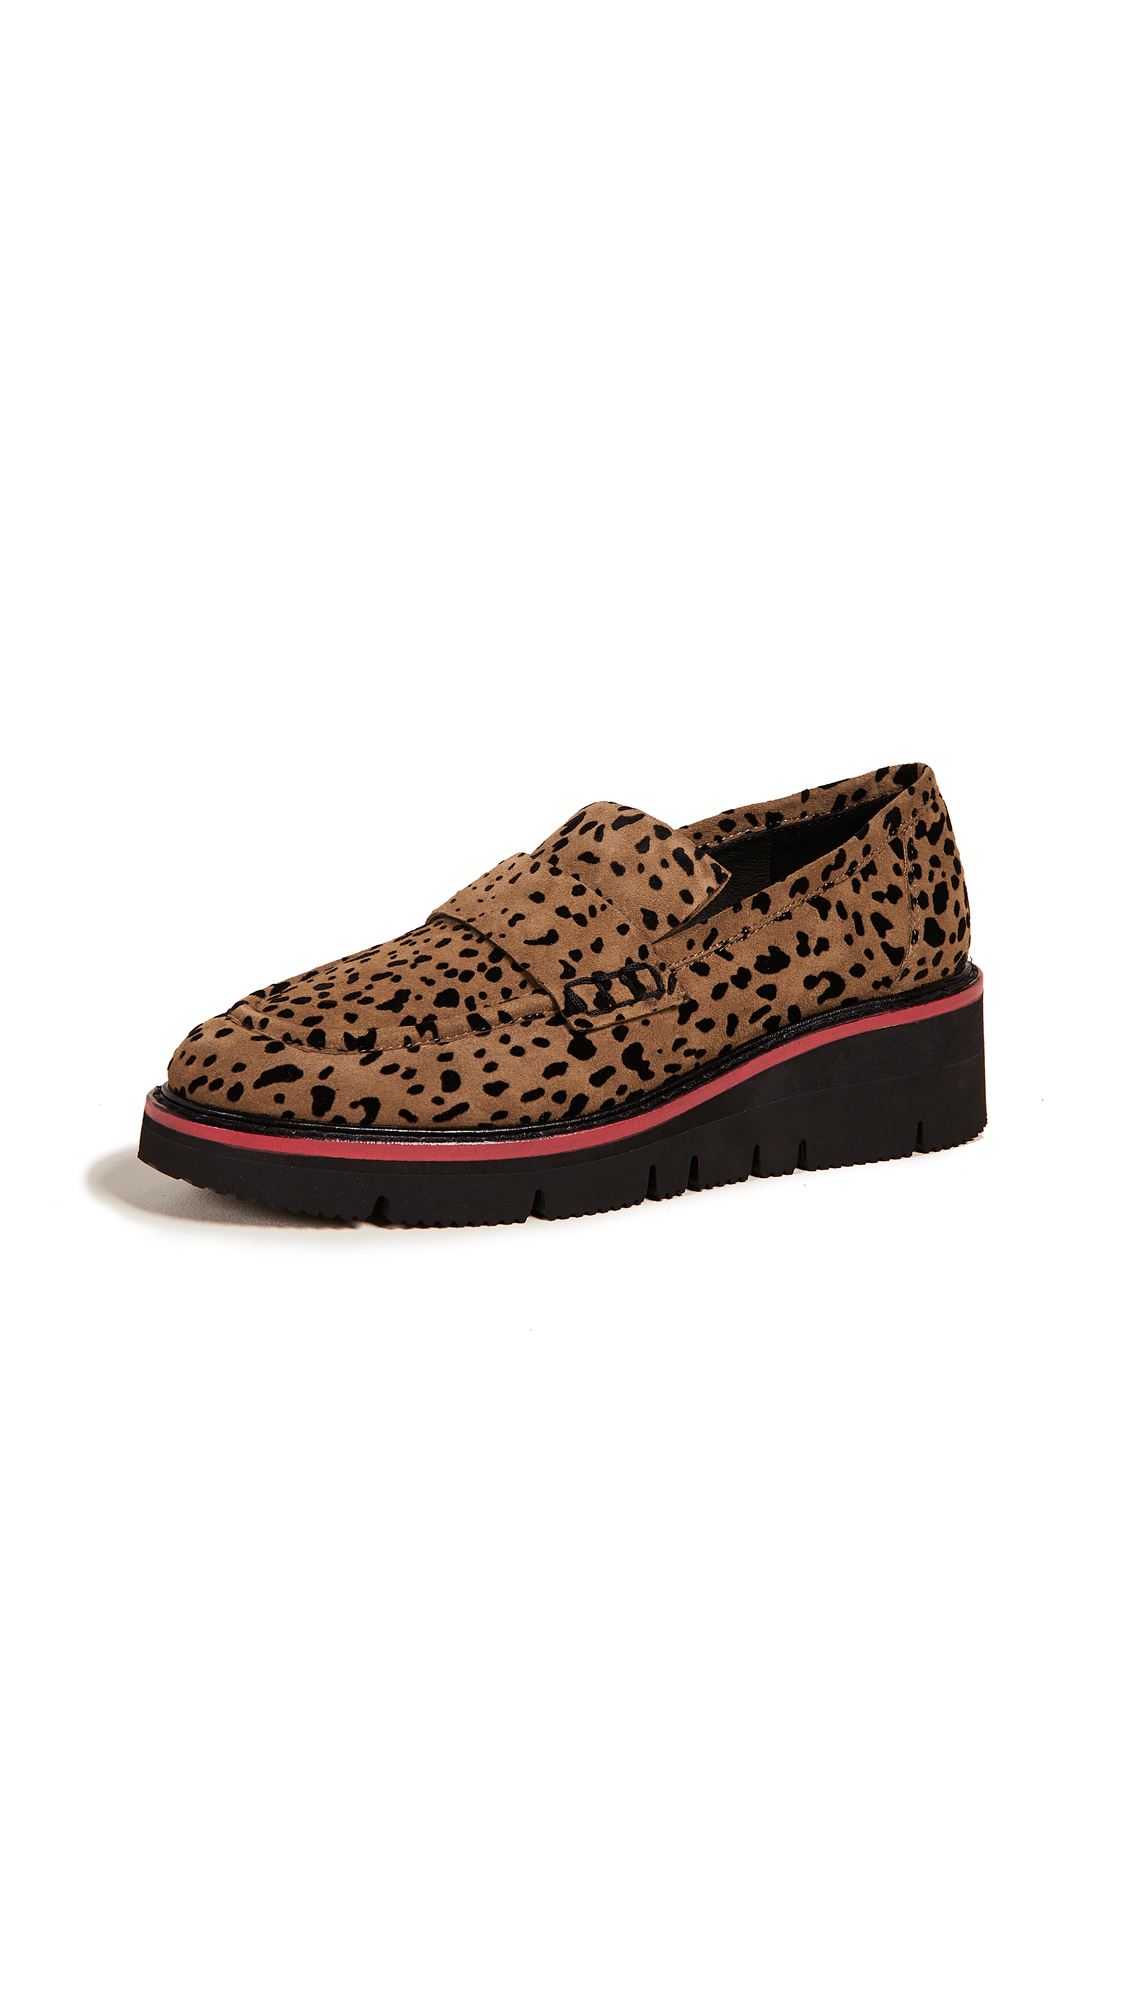 Taryn Loafers, Tan Cheetah